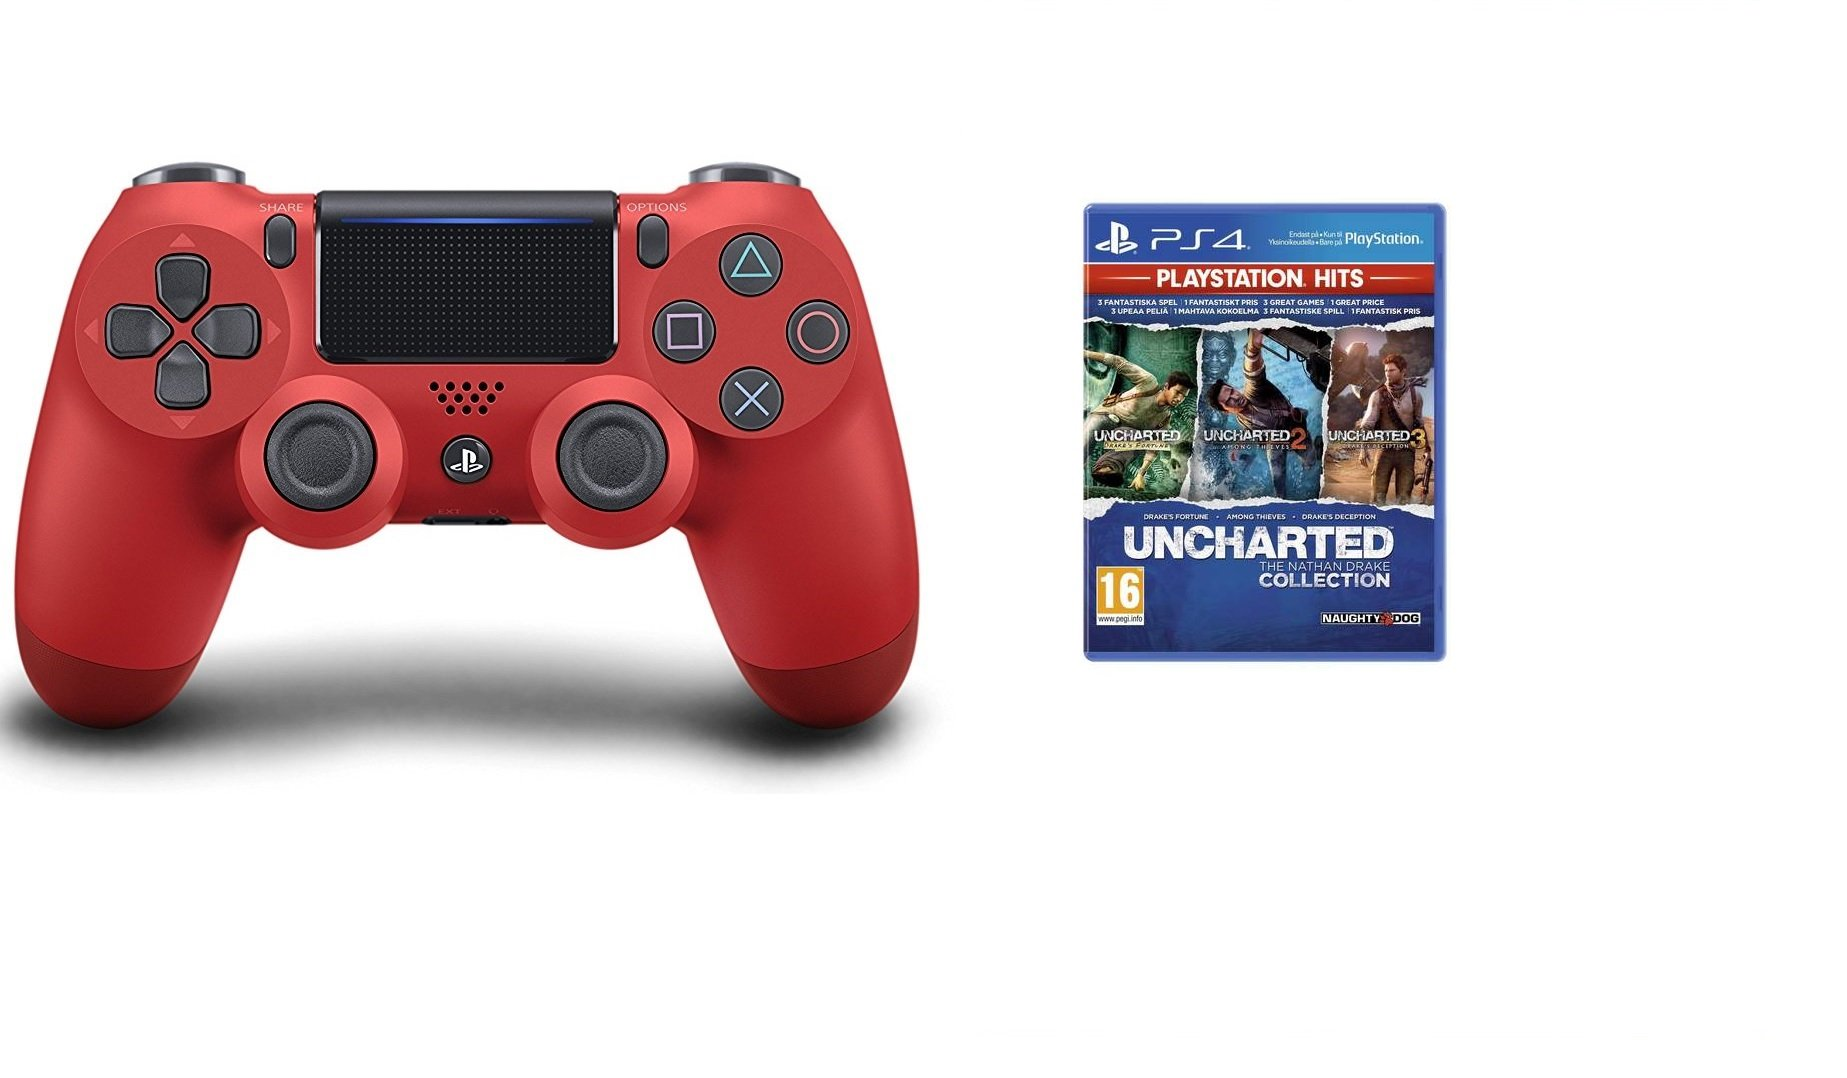 Sony Dualshock 4 Controller v2 - Red + Uncharted: The Nathan Drake Collection (Playstation Hits) (Nordic)